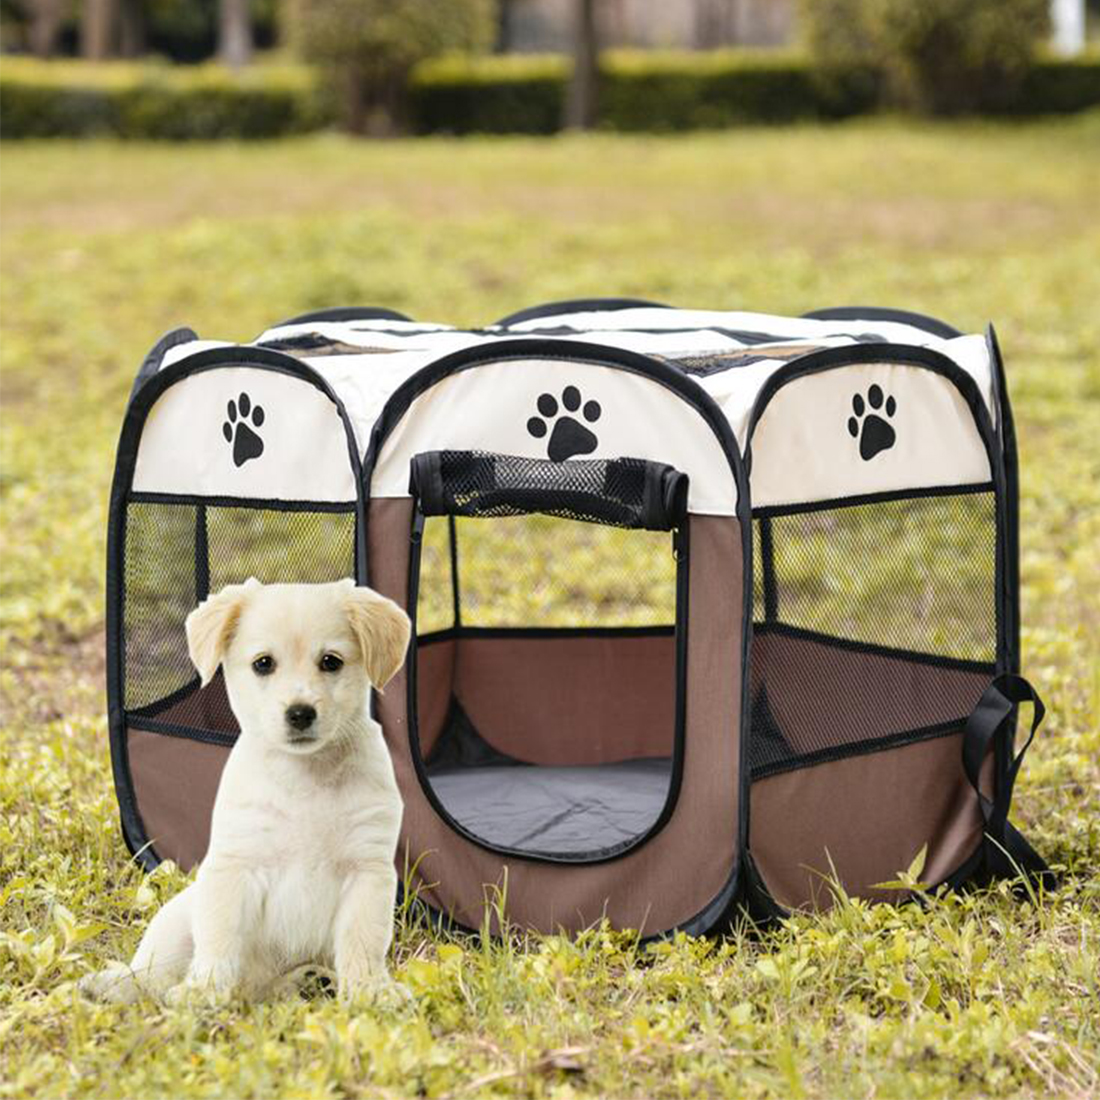 Portable Fold able Playpen Pet <font><b>Dog</b></font> Crate Room Puppy Exercise <font><b>Kennel</b></font> Cat Cage Water Resistant Outdoor Removable Mesh Shade <font><b>Cover</b></font> image